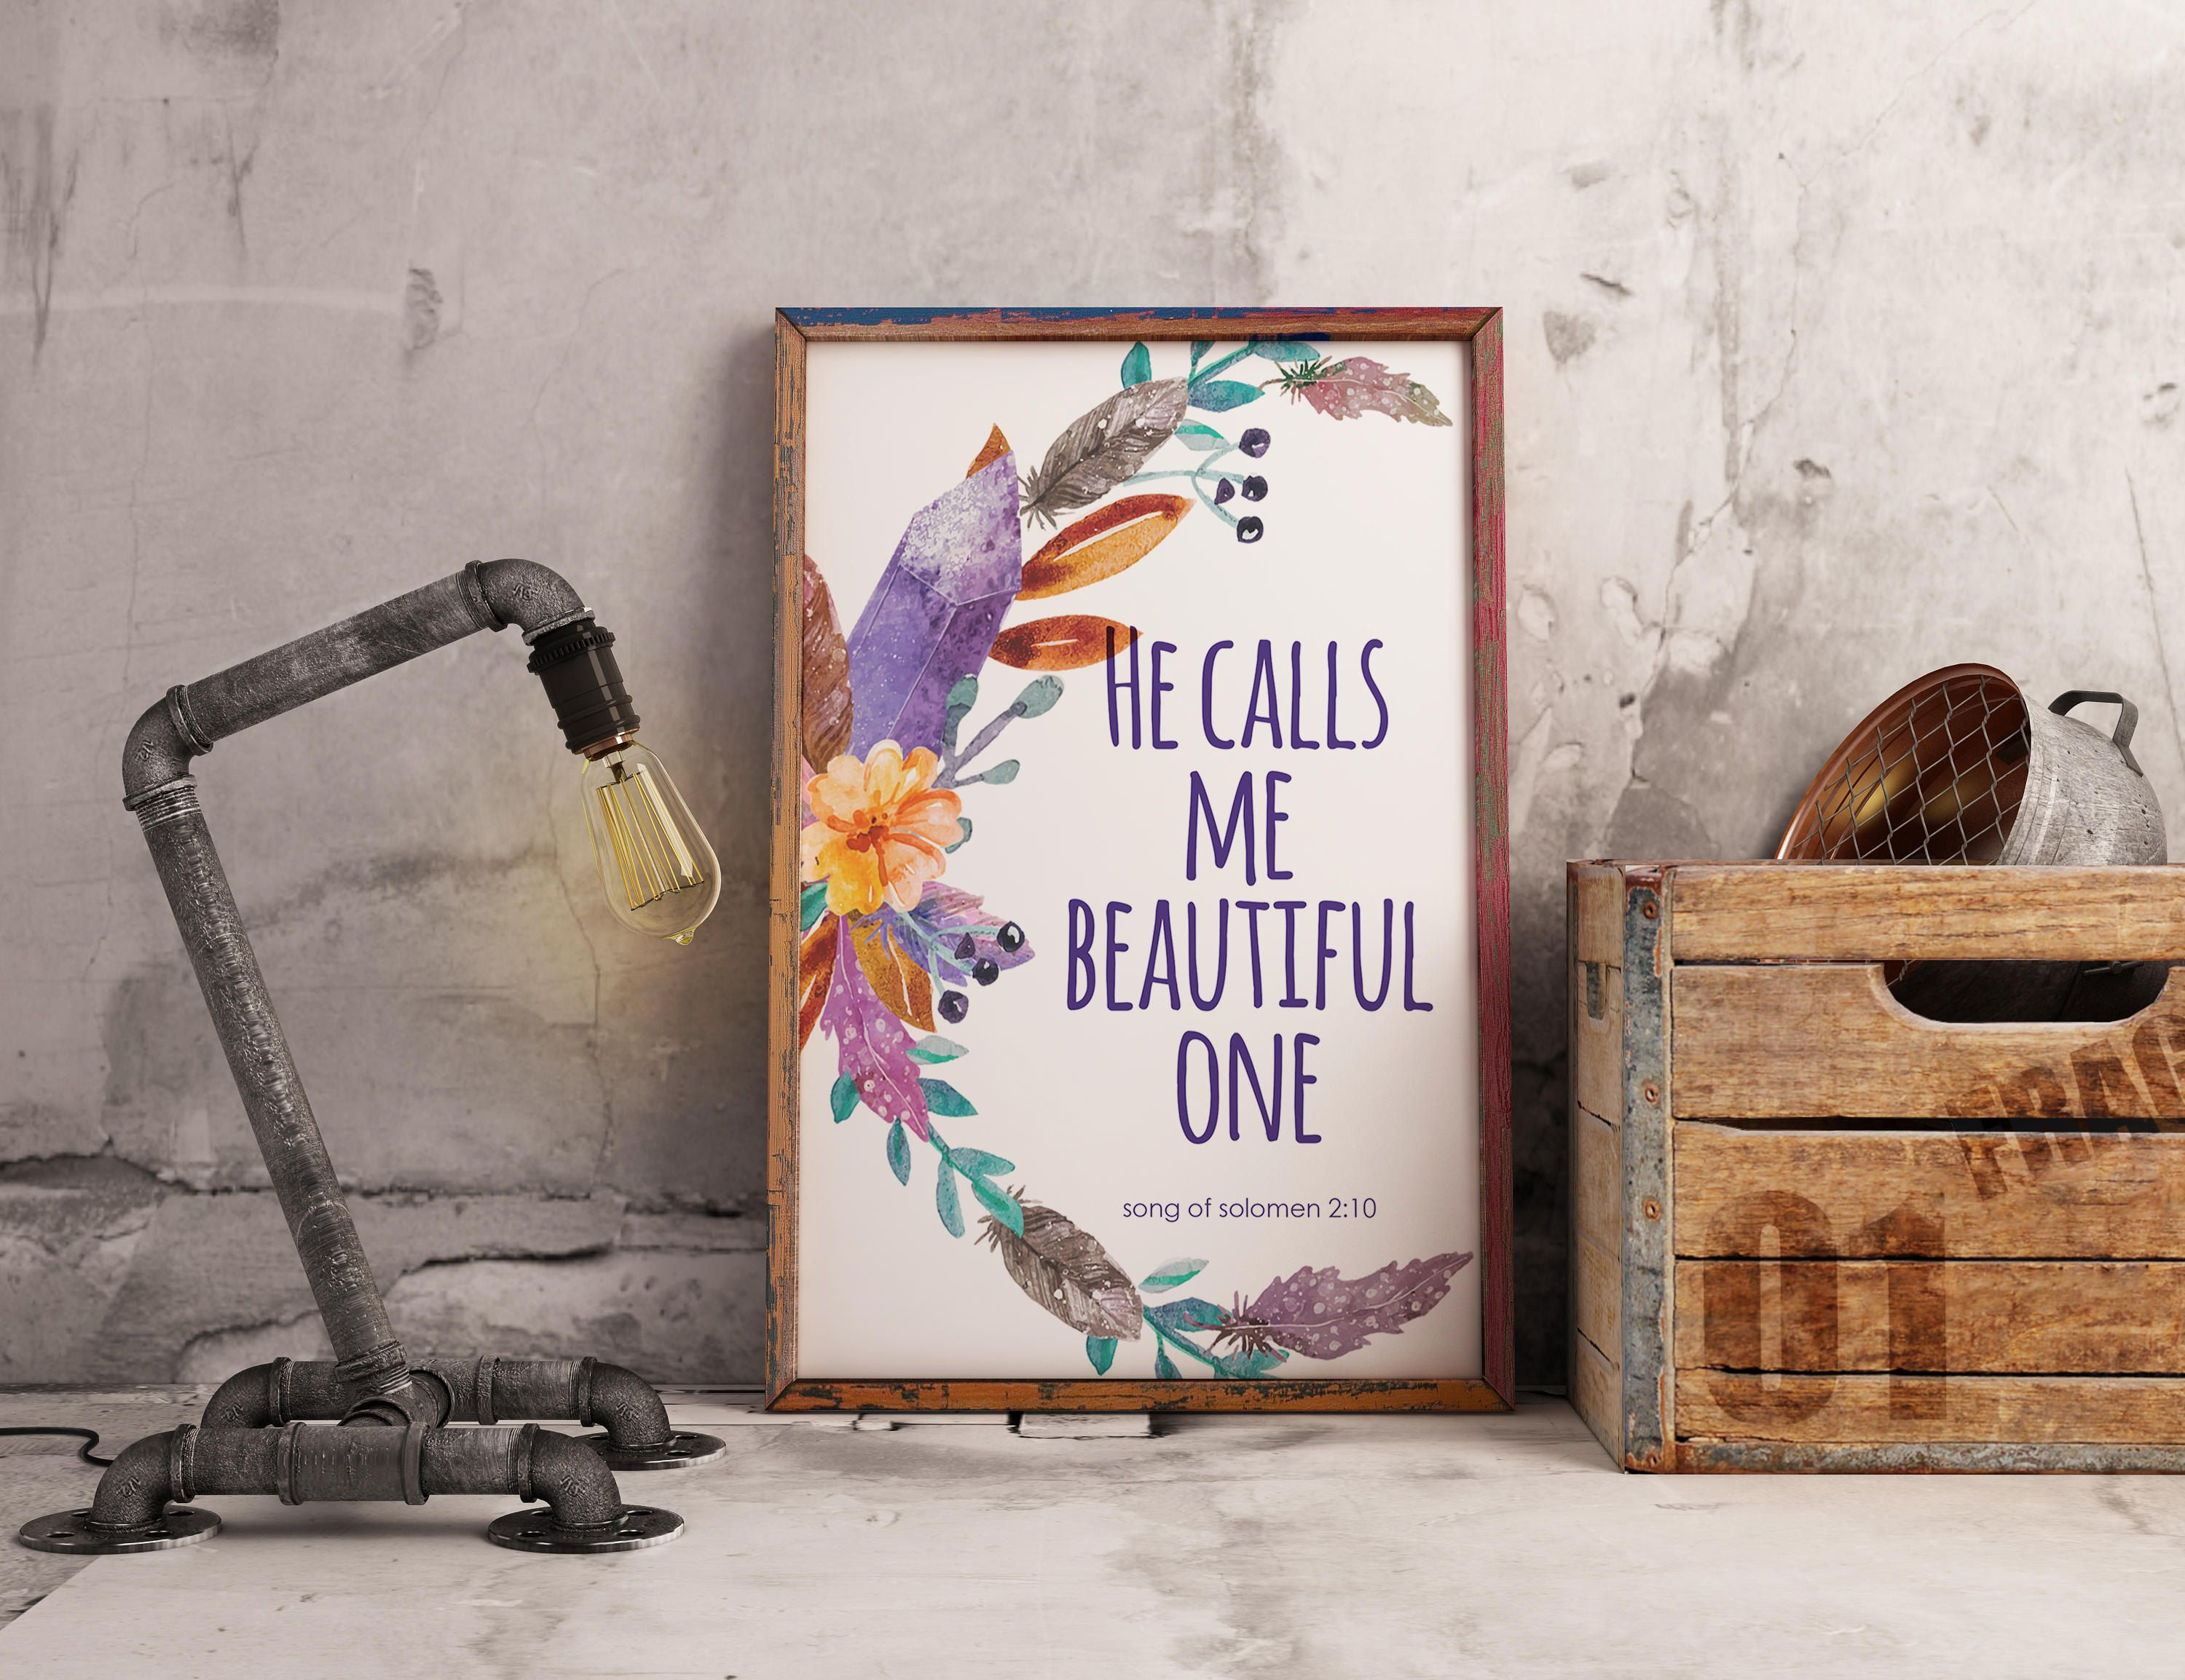 He calls me beautiful one song of solomon 2 10 bible verse he calls me beautiful one song of solomon 2 10 bible verse scripture bible quote spiritual gift christian wall art instant download negle Gallery